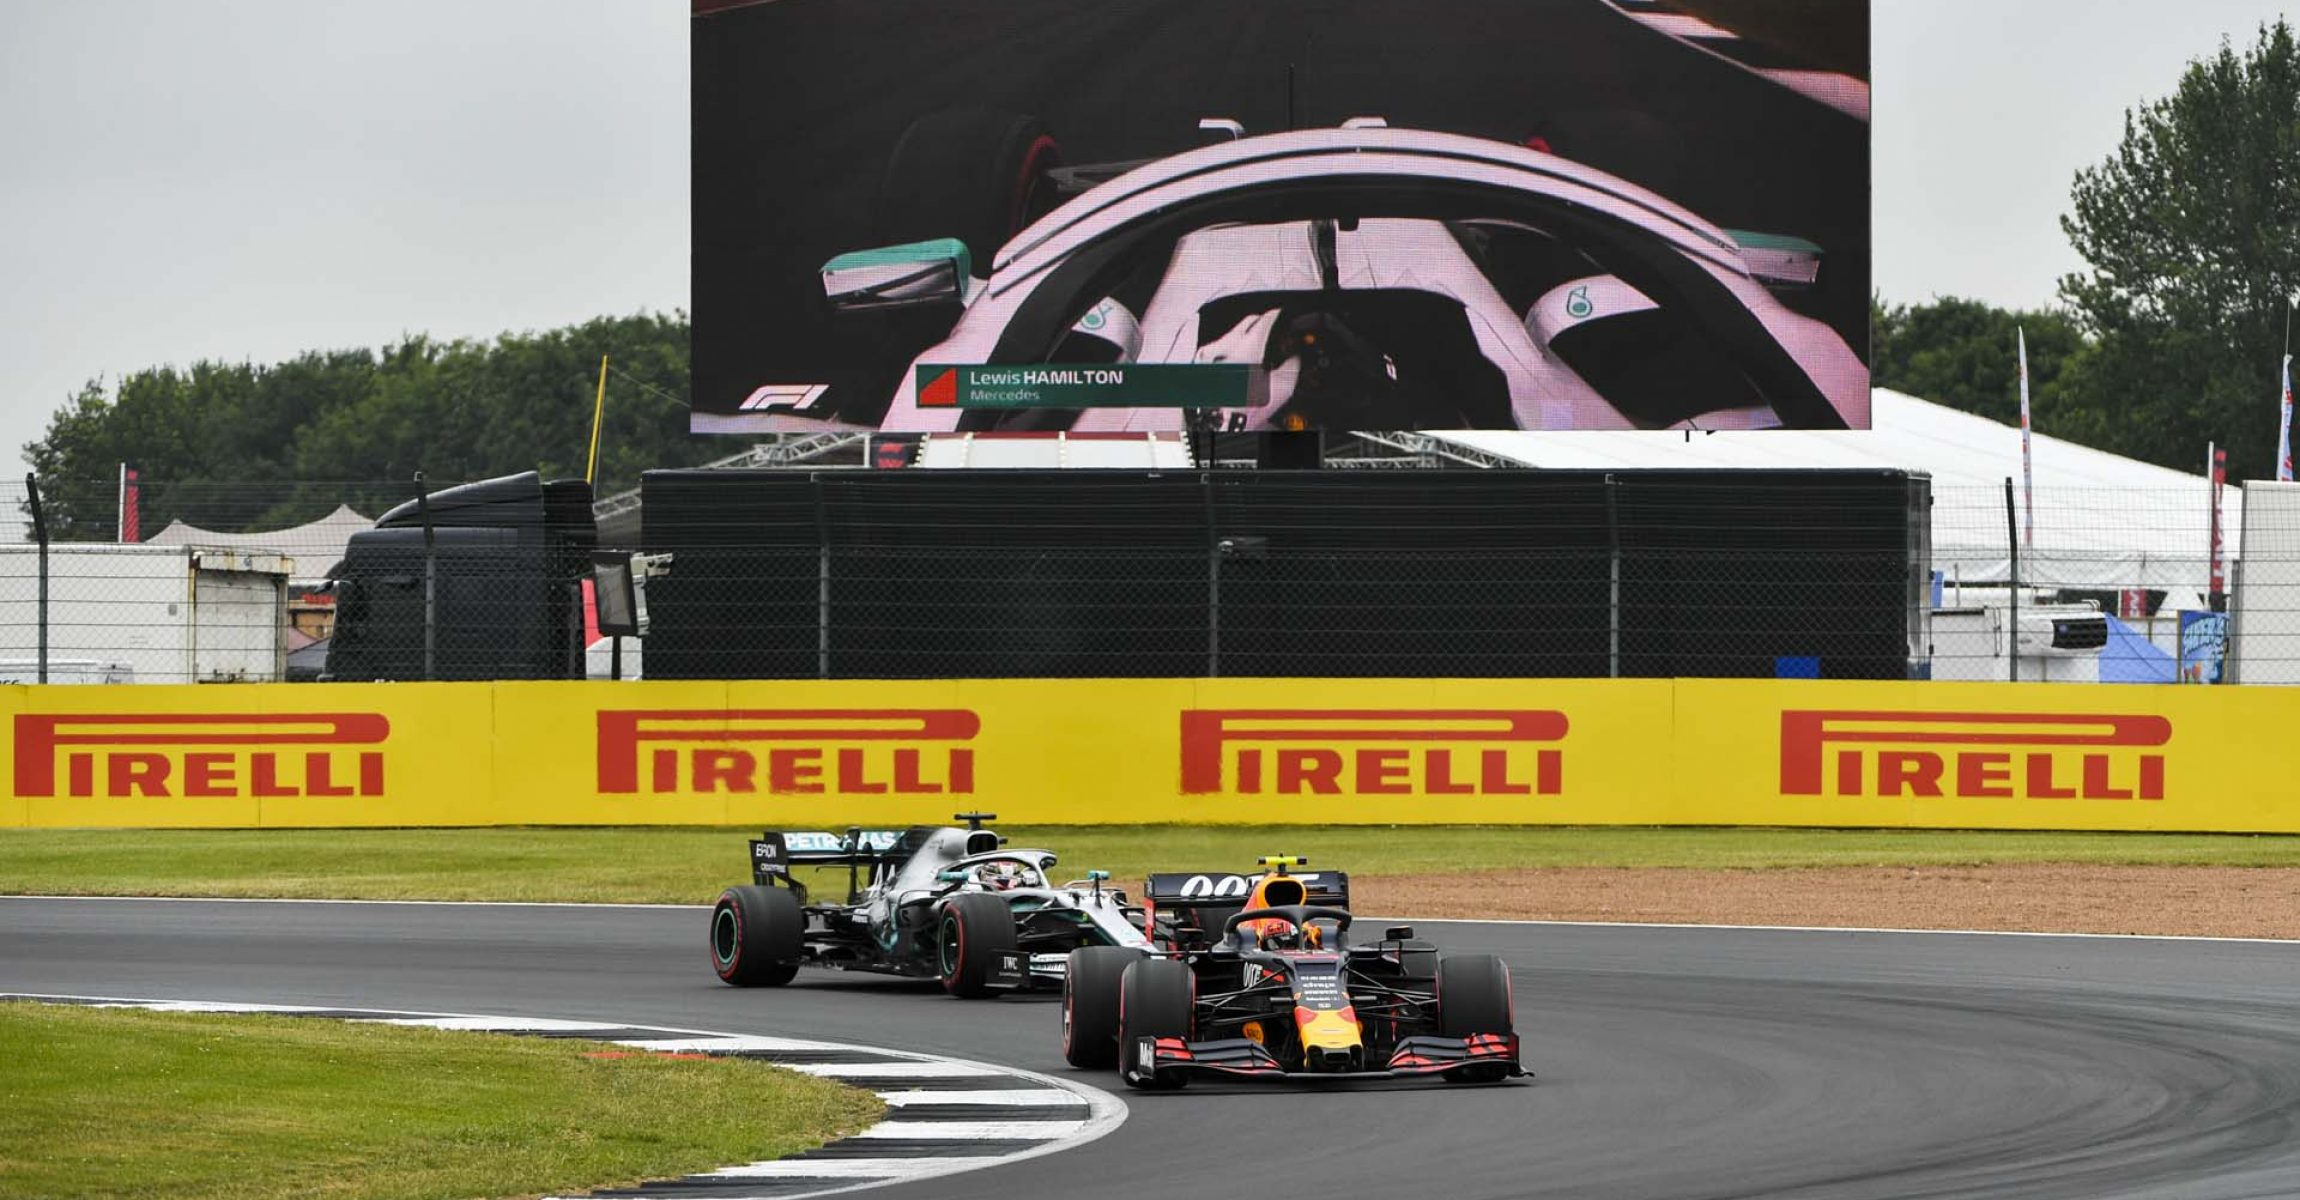 SILVERSTONE, UNITED KINGDOM - JULY 13: Pierre Gasly, Red Bull Racing RB15, leads Lewis Hamilton, Mercedes AMG F1 W10 during the British GP at Silverstone on July 13, 2019 in Silverstone, United Kingdom. (Photo by Mark Sutton / LAT Images)